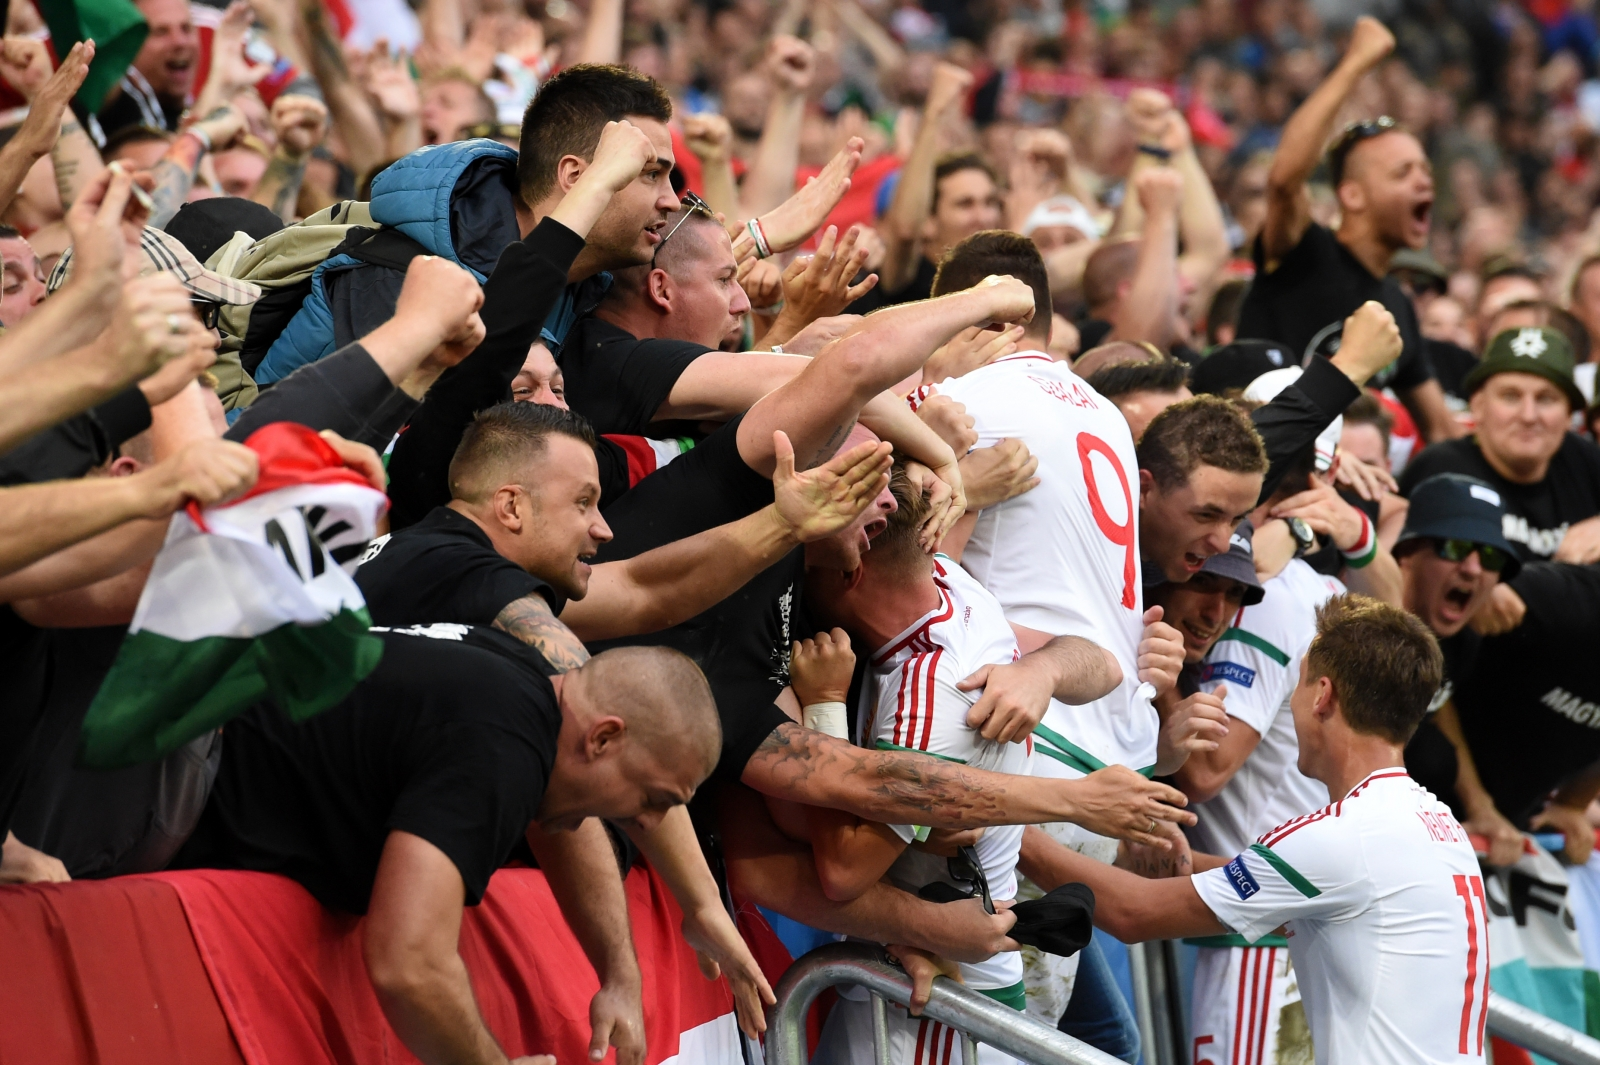 Hungary's players and fans celebrate